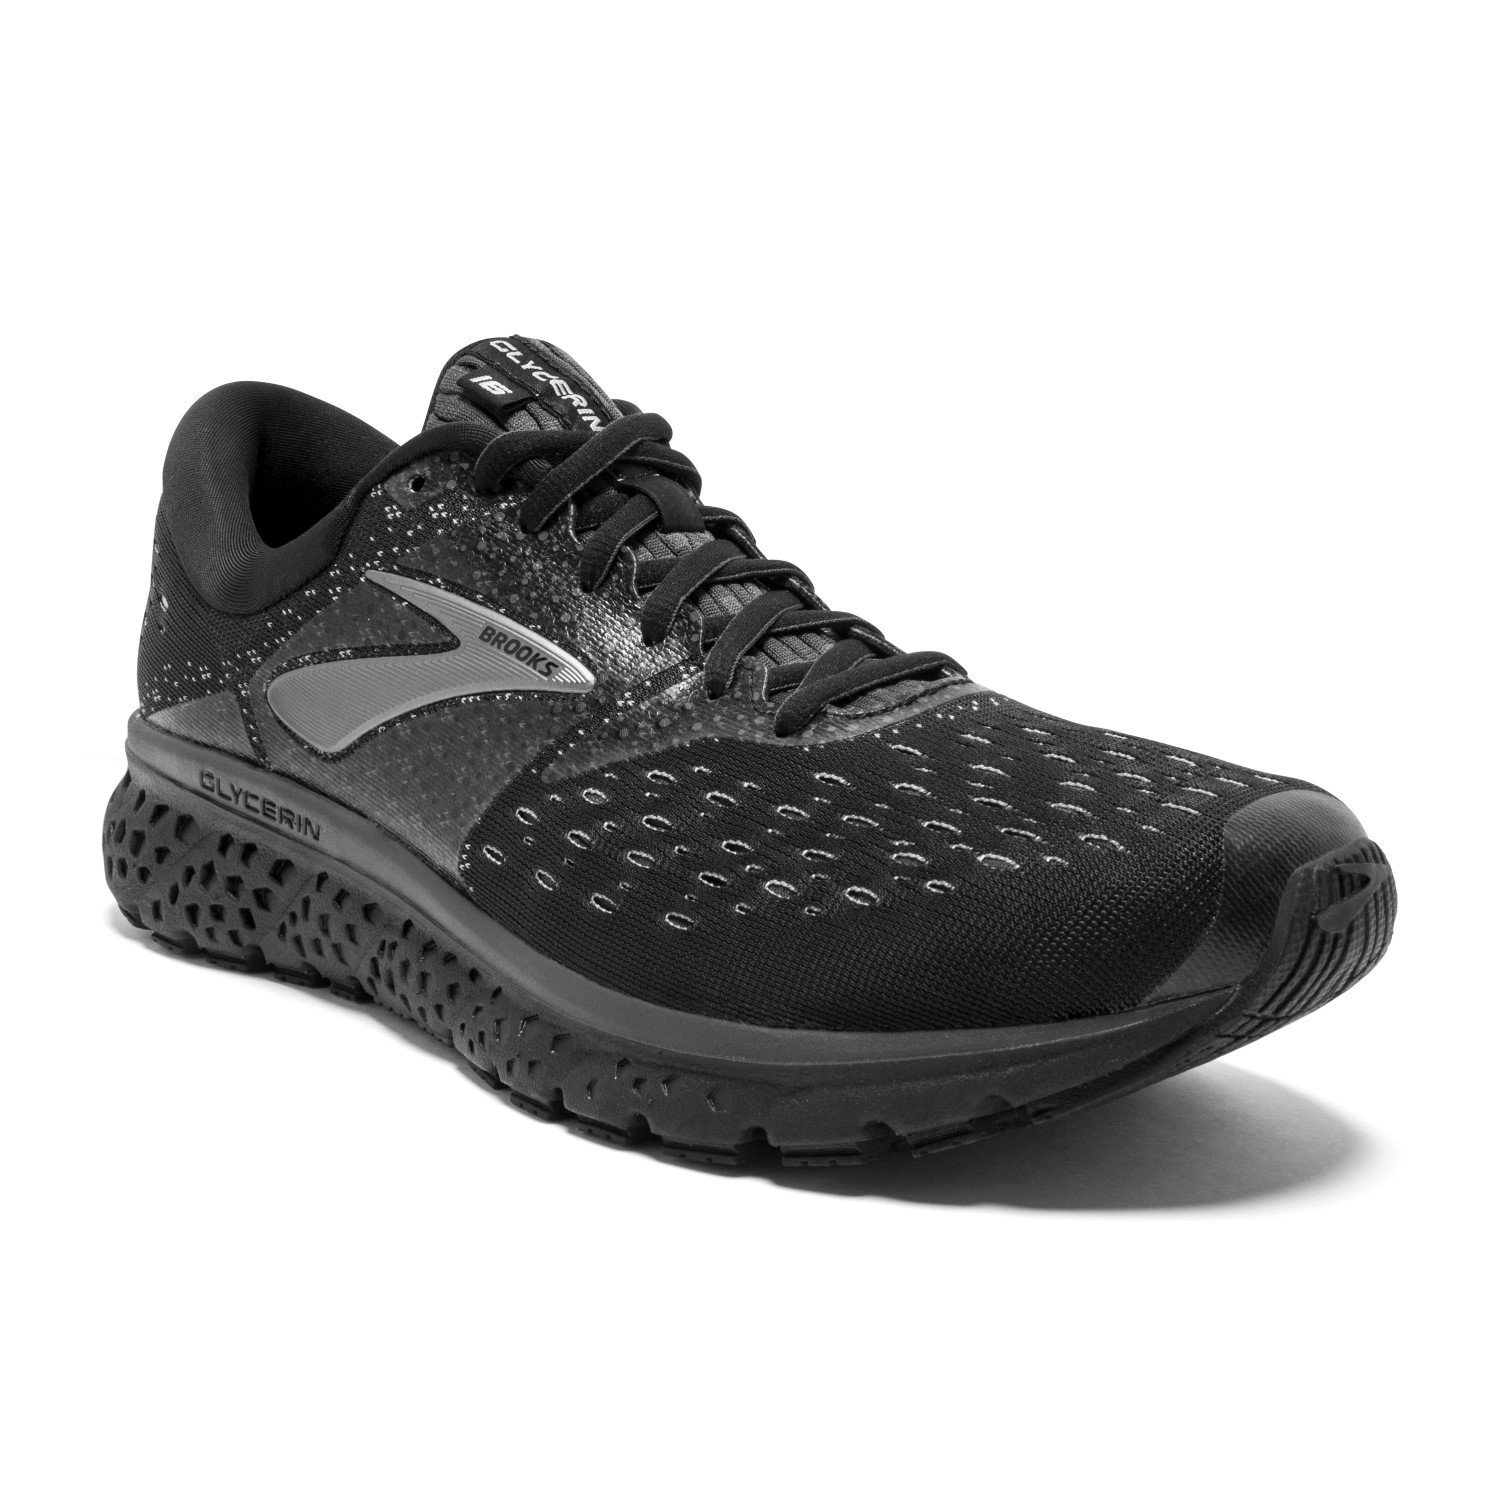 Brooks Glycerin 15 - Running Shoes Reviews